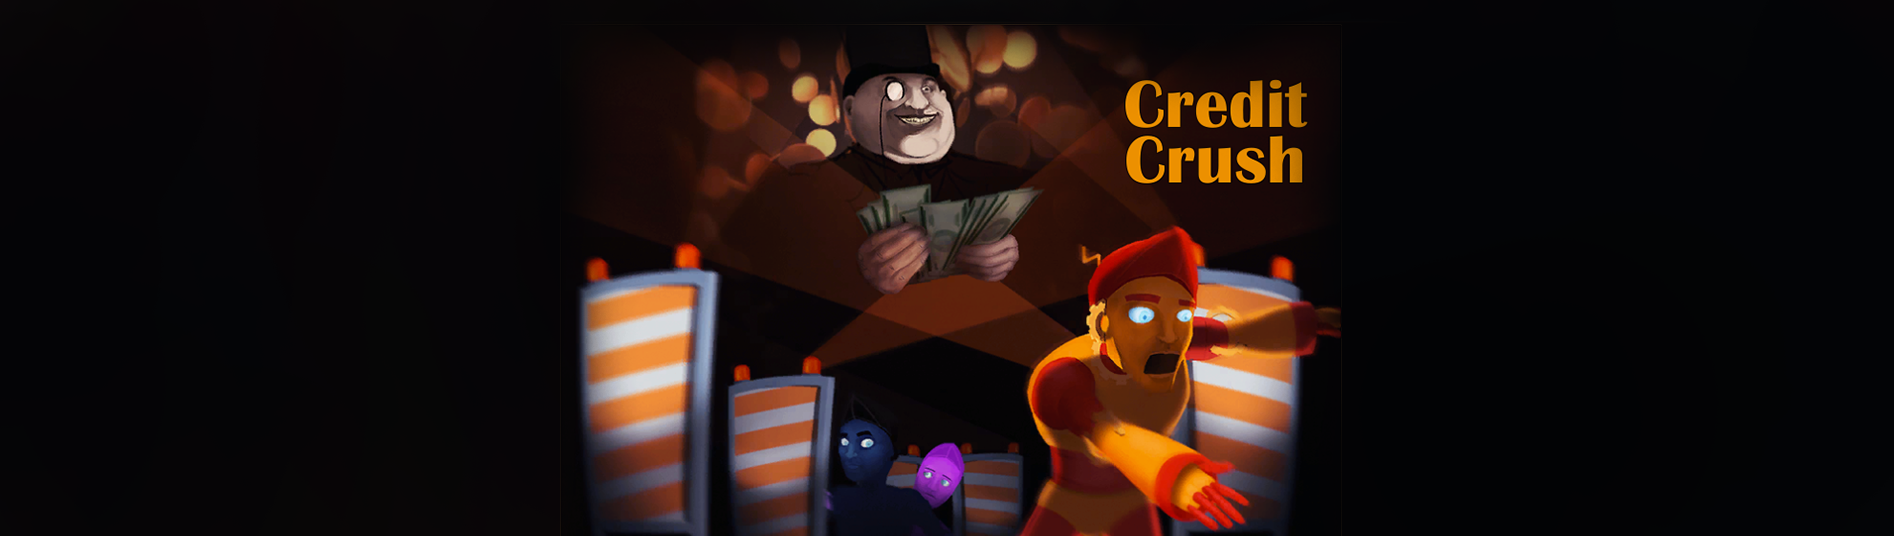 Credit Crush